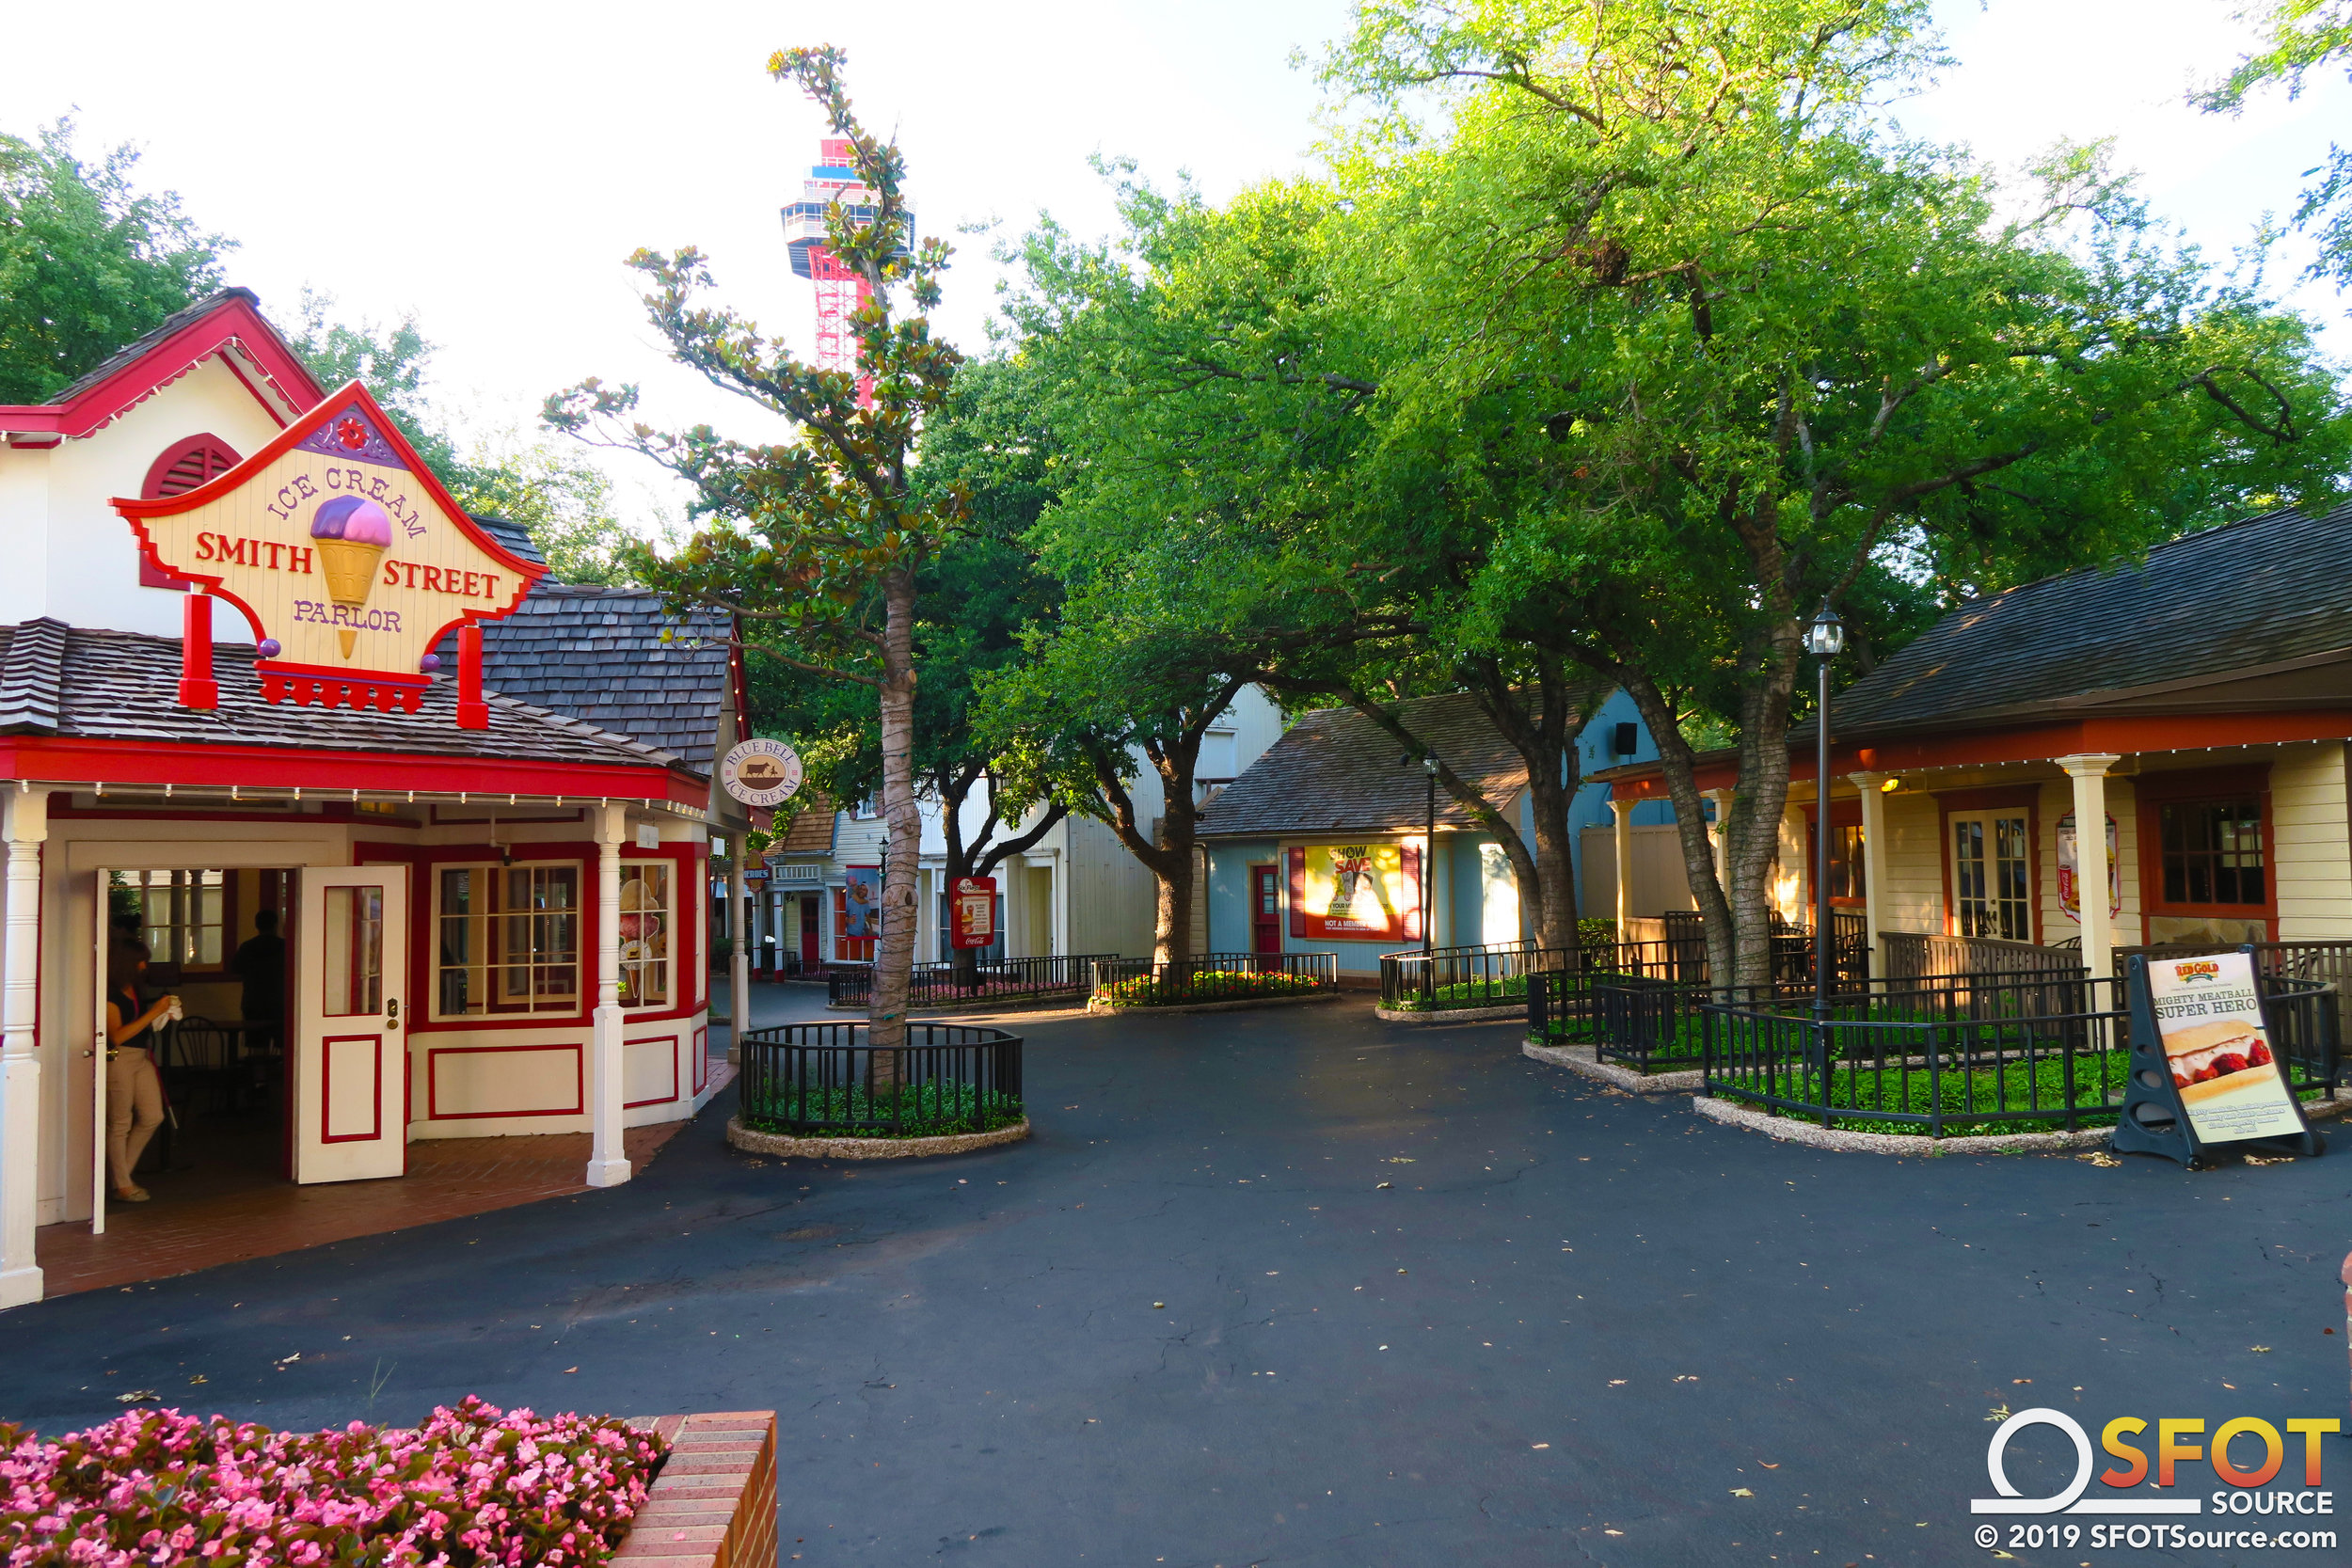 A look at Old South during the park's 2019 season.